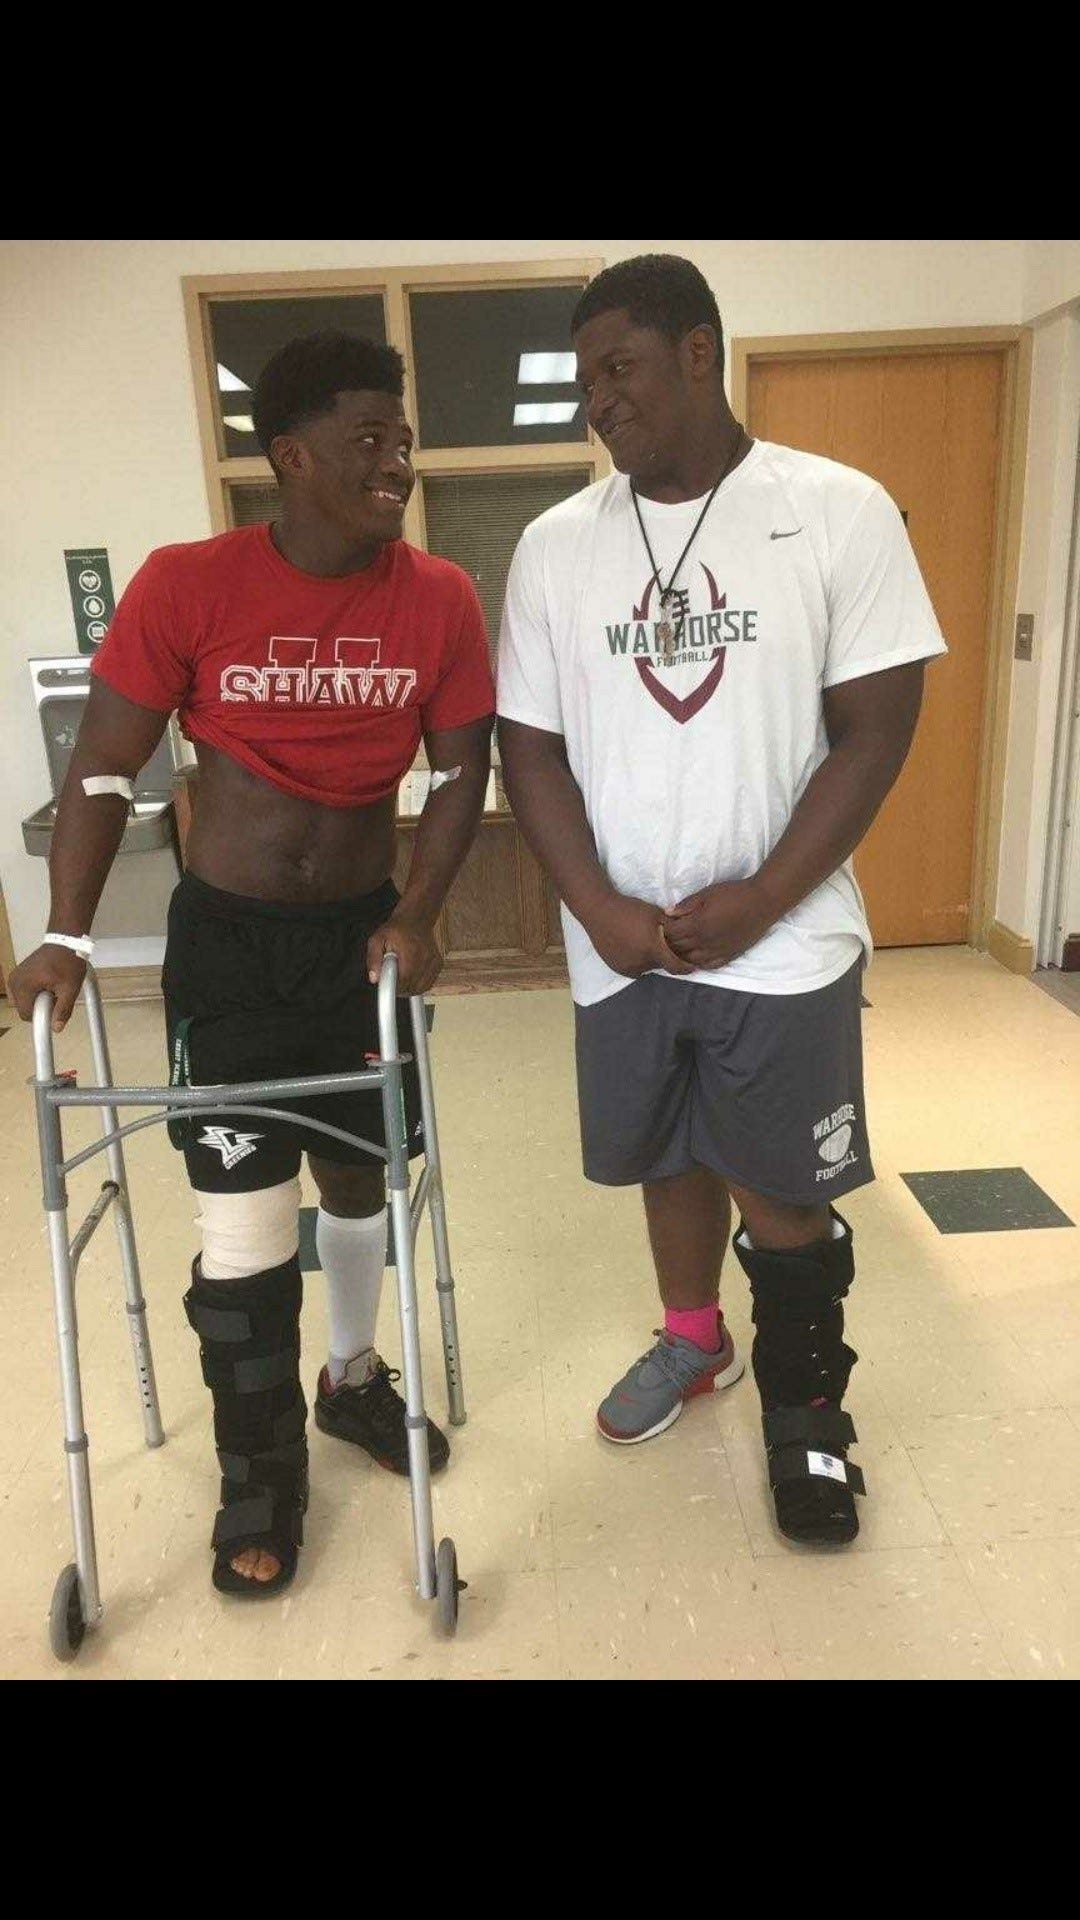 Sidney Gibbs (left) smiles with his younger brother Saevion Gibbs at the hospital after Sidney  sustained a tibial shaft fracture.